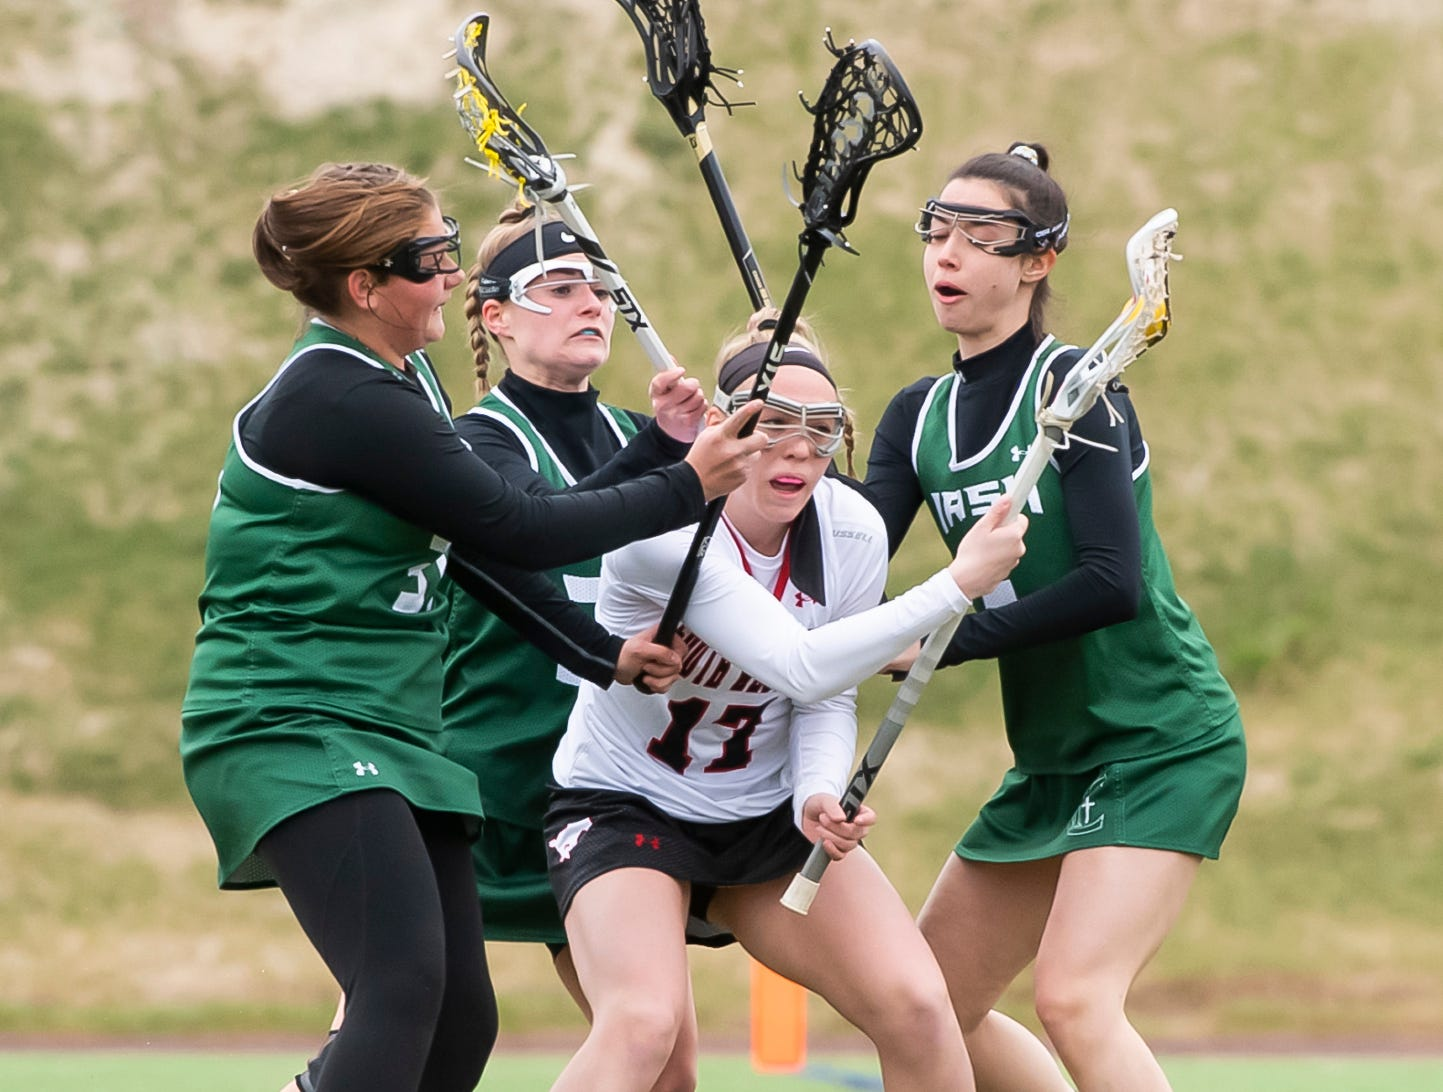 South Western's Libby Benzing gets trapped by a trio of York Catholic defenders during a YAIAA lacrosse game in Hanover on Tuesday, April 2, 2019. South Western fell 19-7.